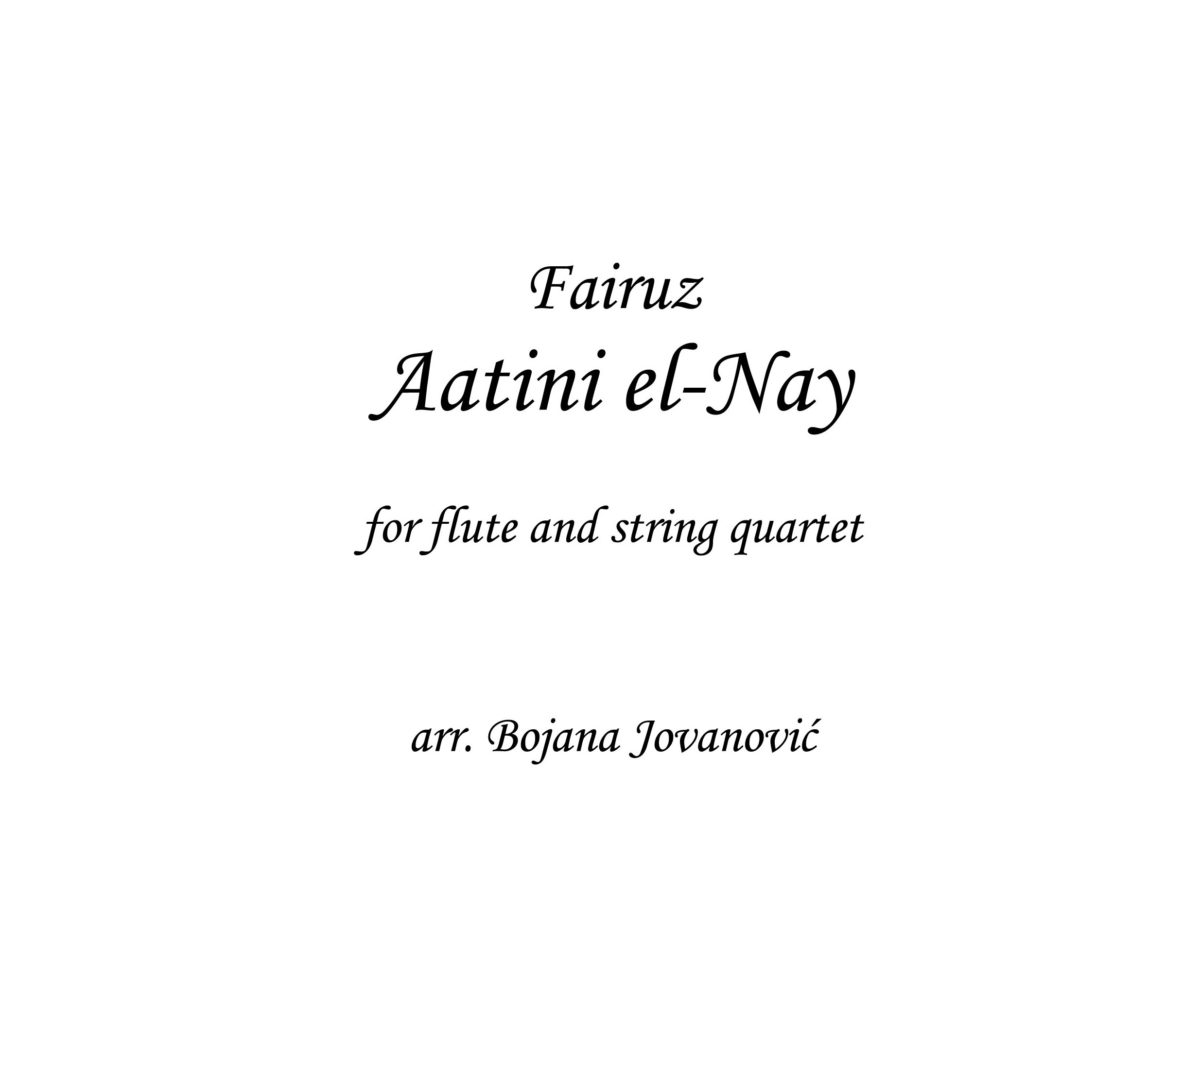 Aatini el-Nay (Fairuz) - Sheet Music